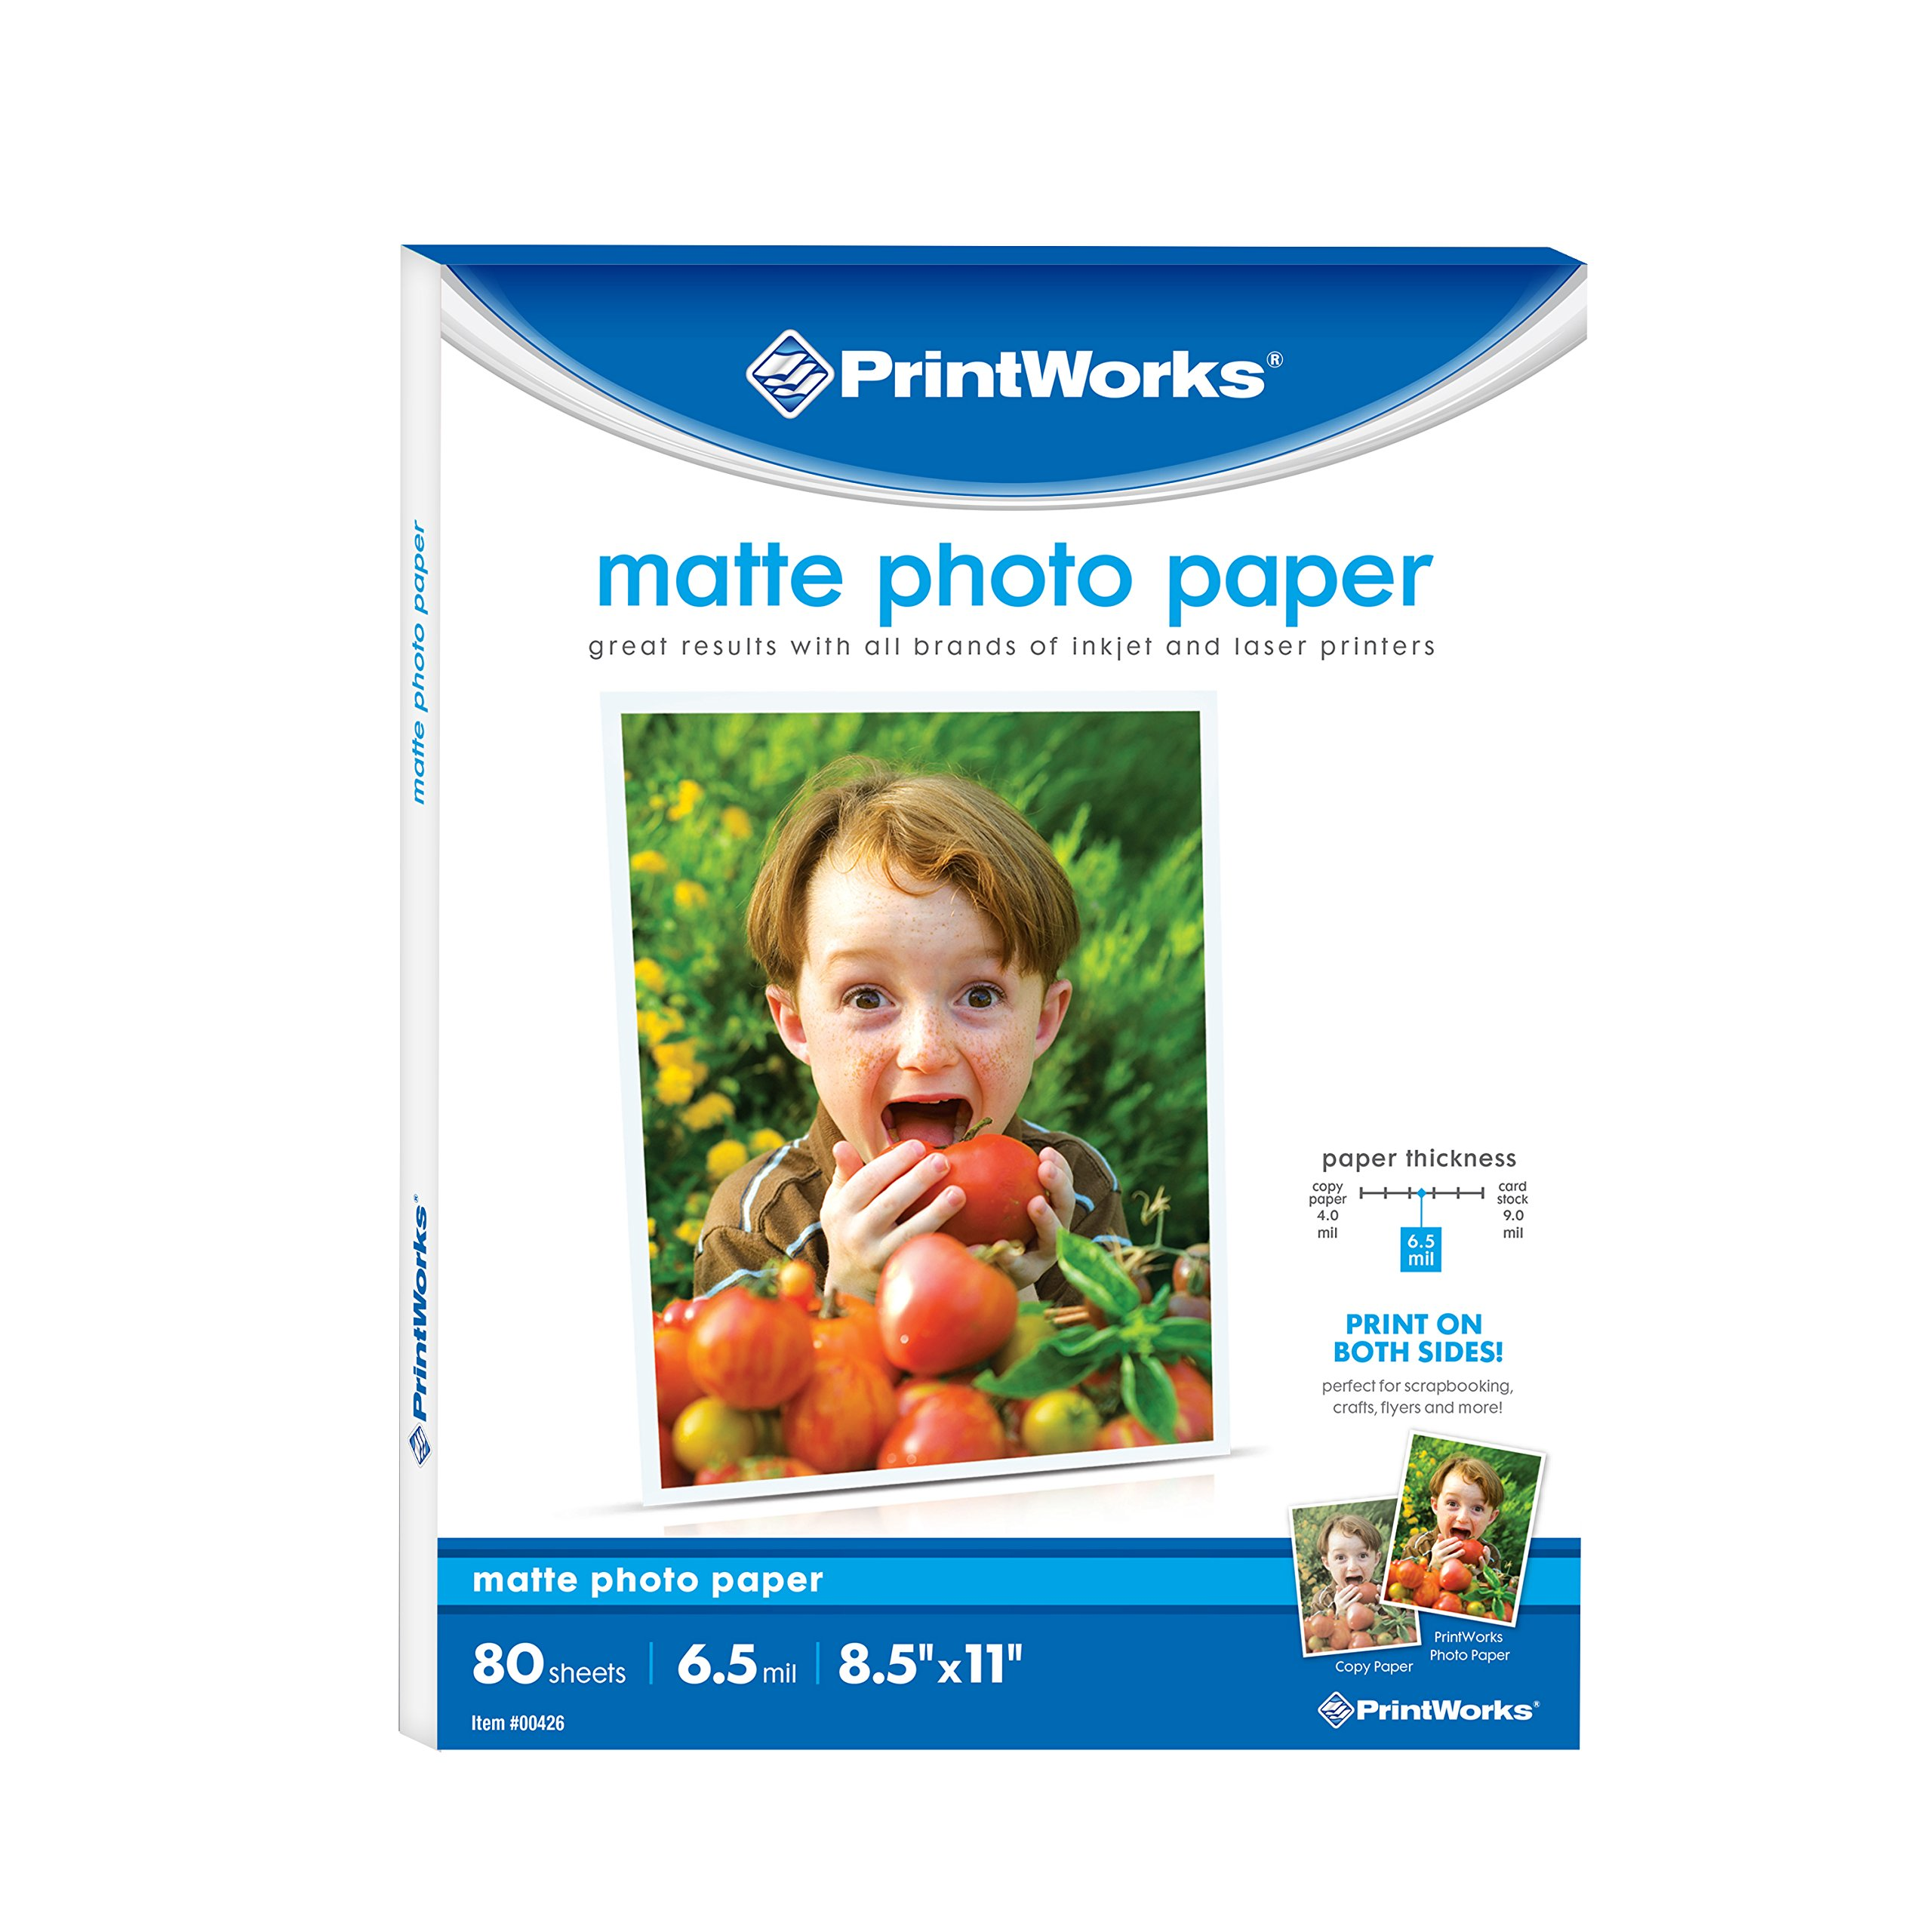 Printworks Matte Photo Paper for Inkjet Printers, Printable on Both Sides, 6.5 mil, 8.5 x 11 inches, 80 Sheets (00426-6)